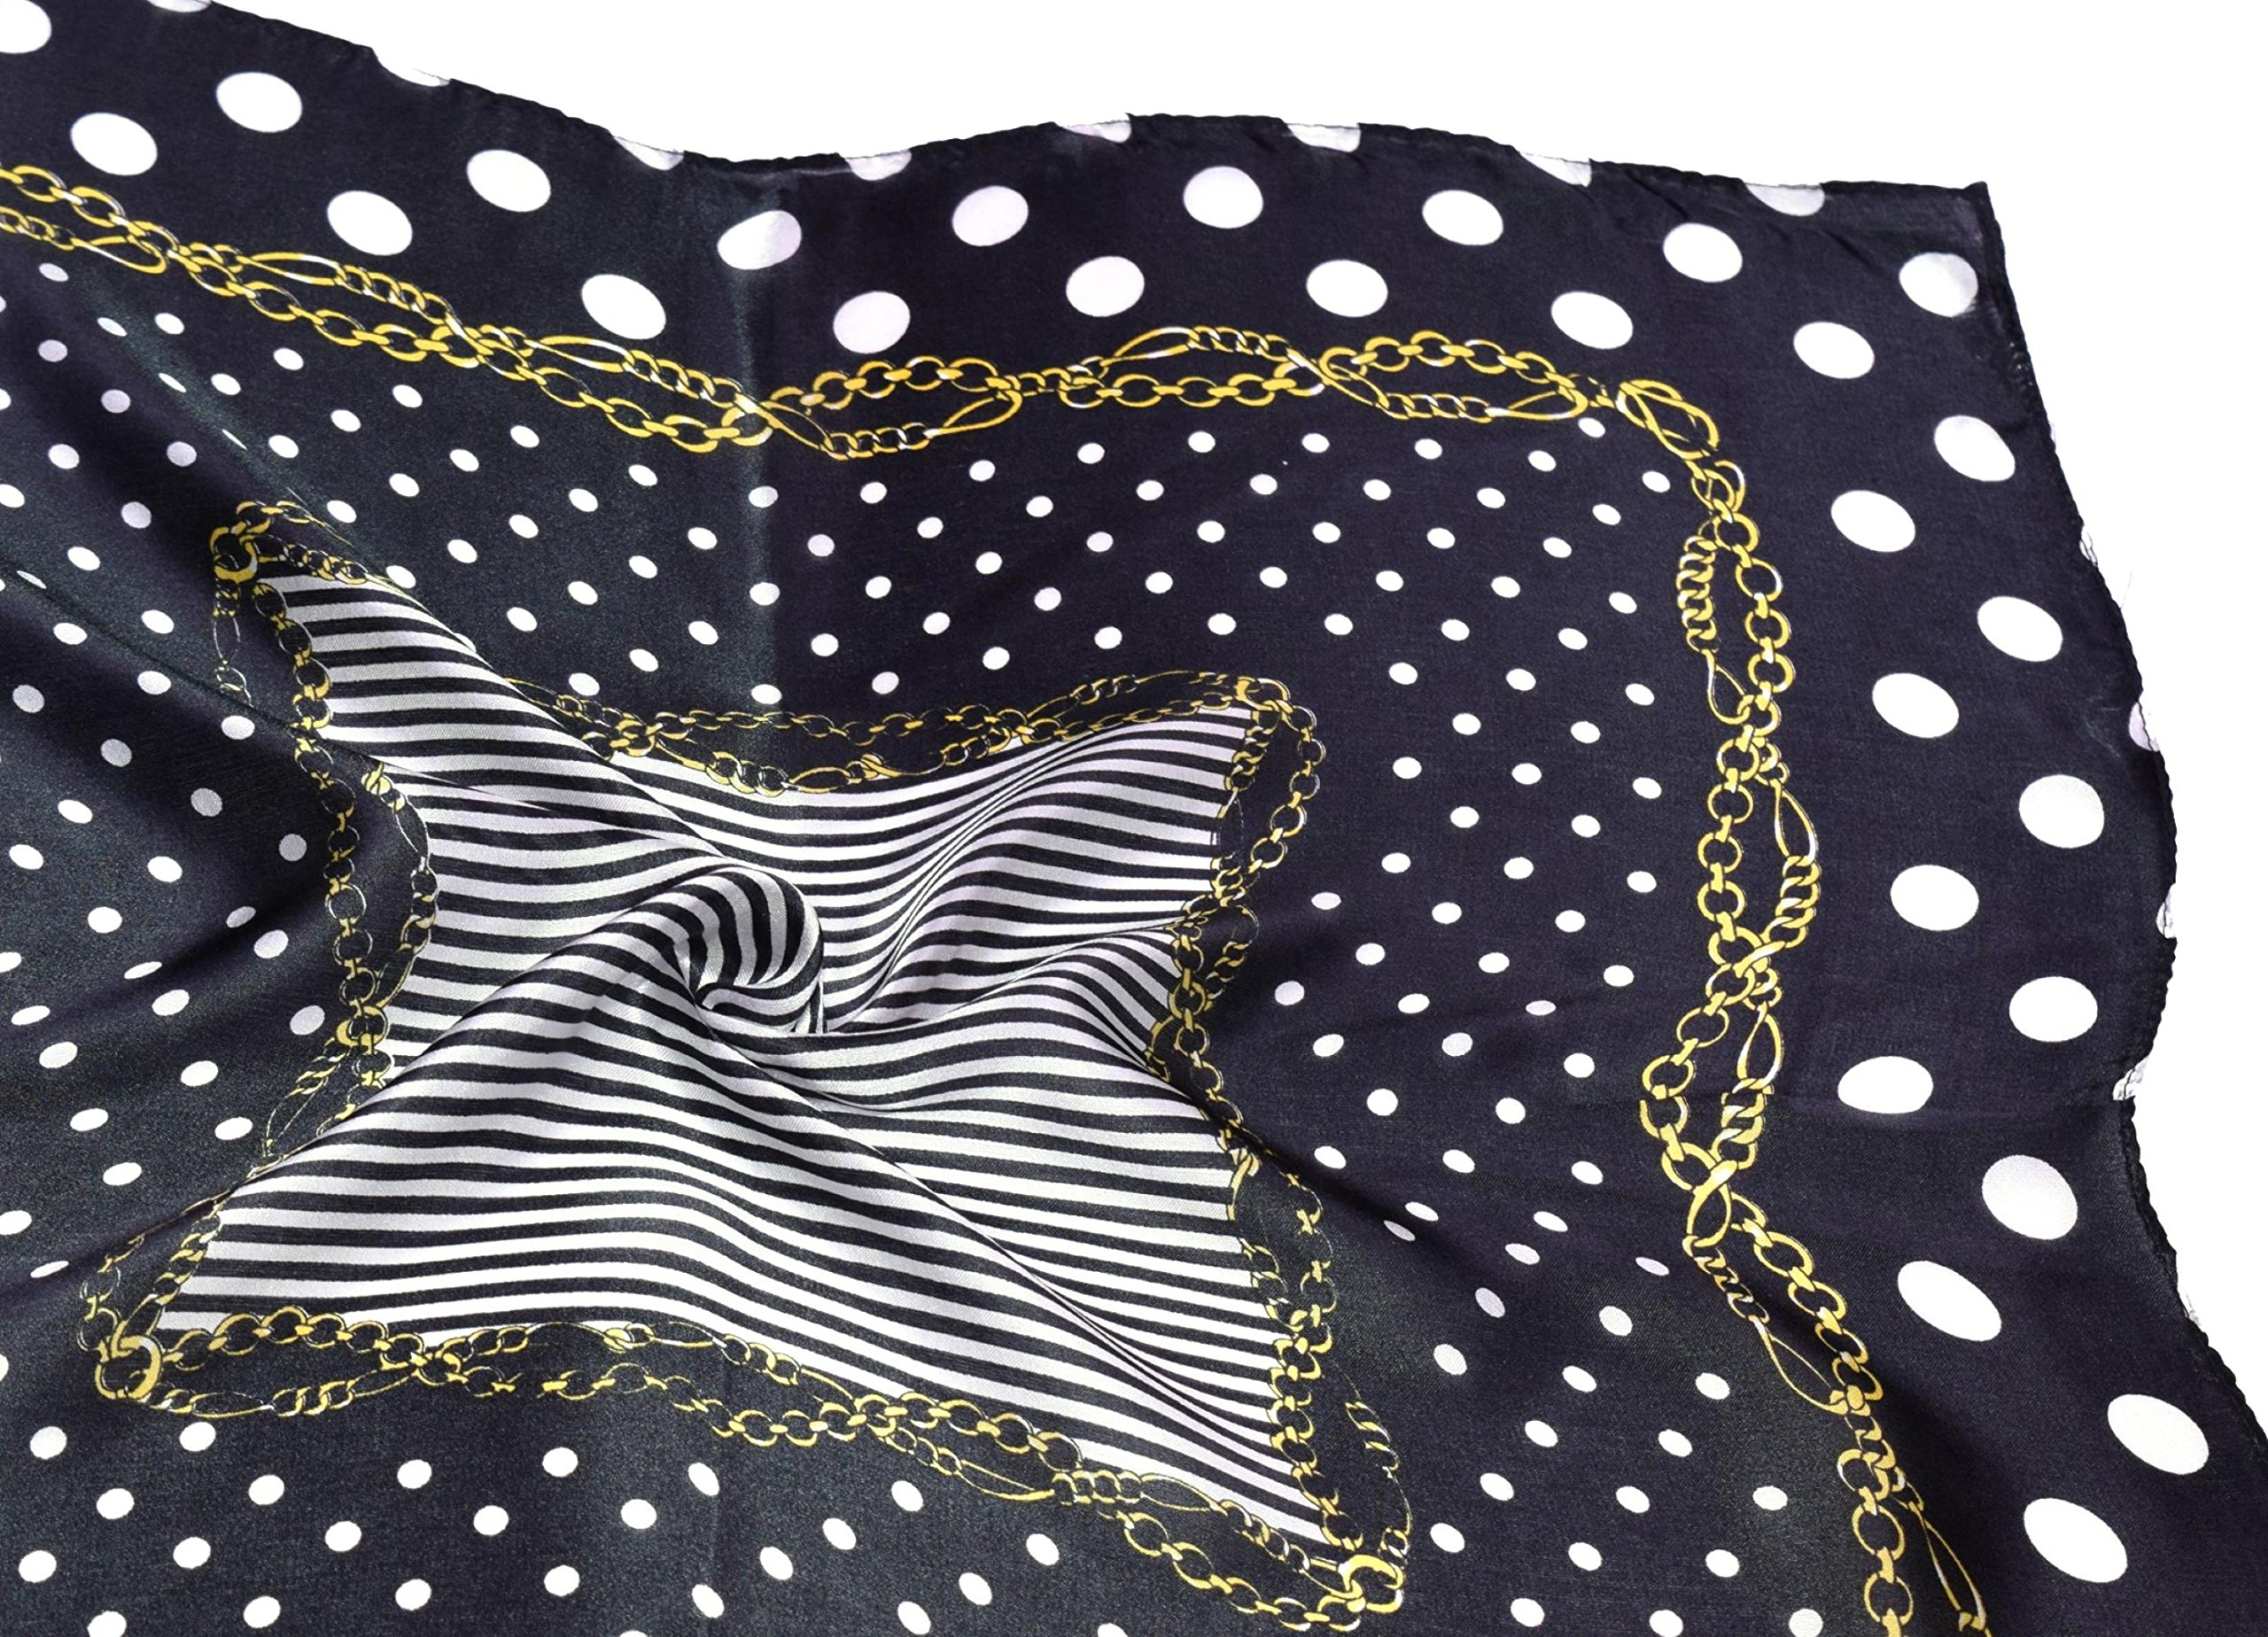 Black White Gold Spotted Printed Fine Small Square Silk Scarf by Bees Knees Fashion (Image #6)